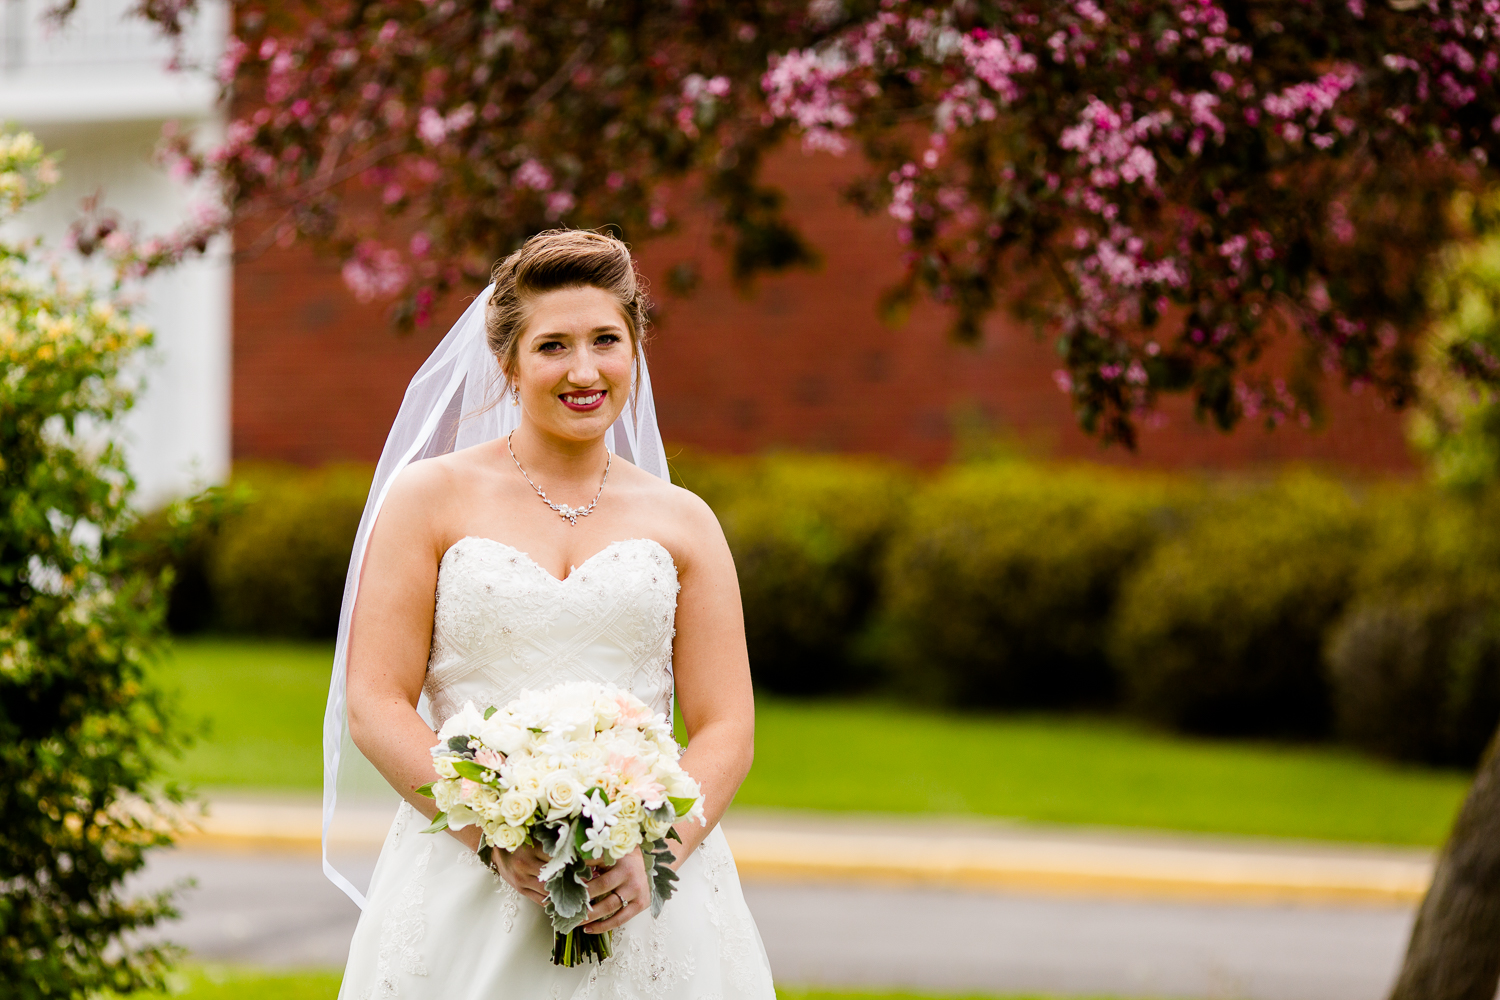 Portrait of a bride in front of a flowering cherry tree. She is wearing a white dress and holding a bouquet of flowers.